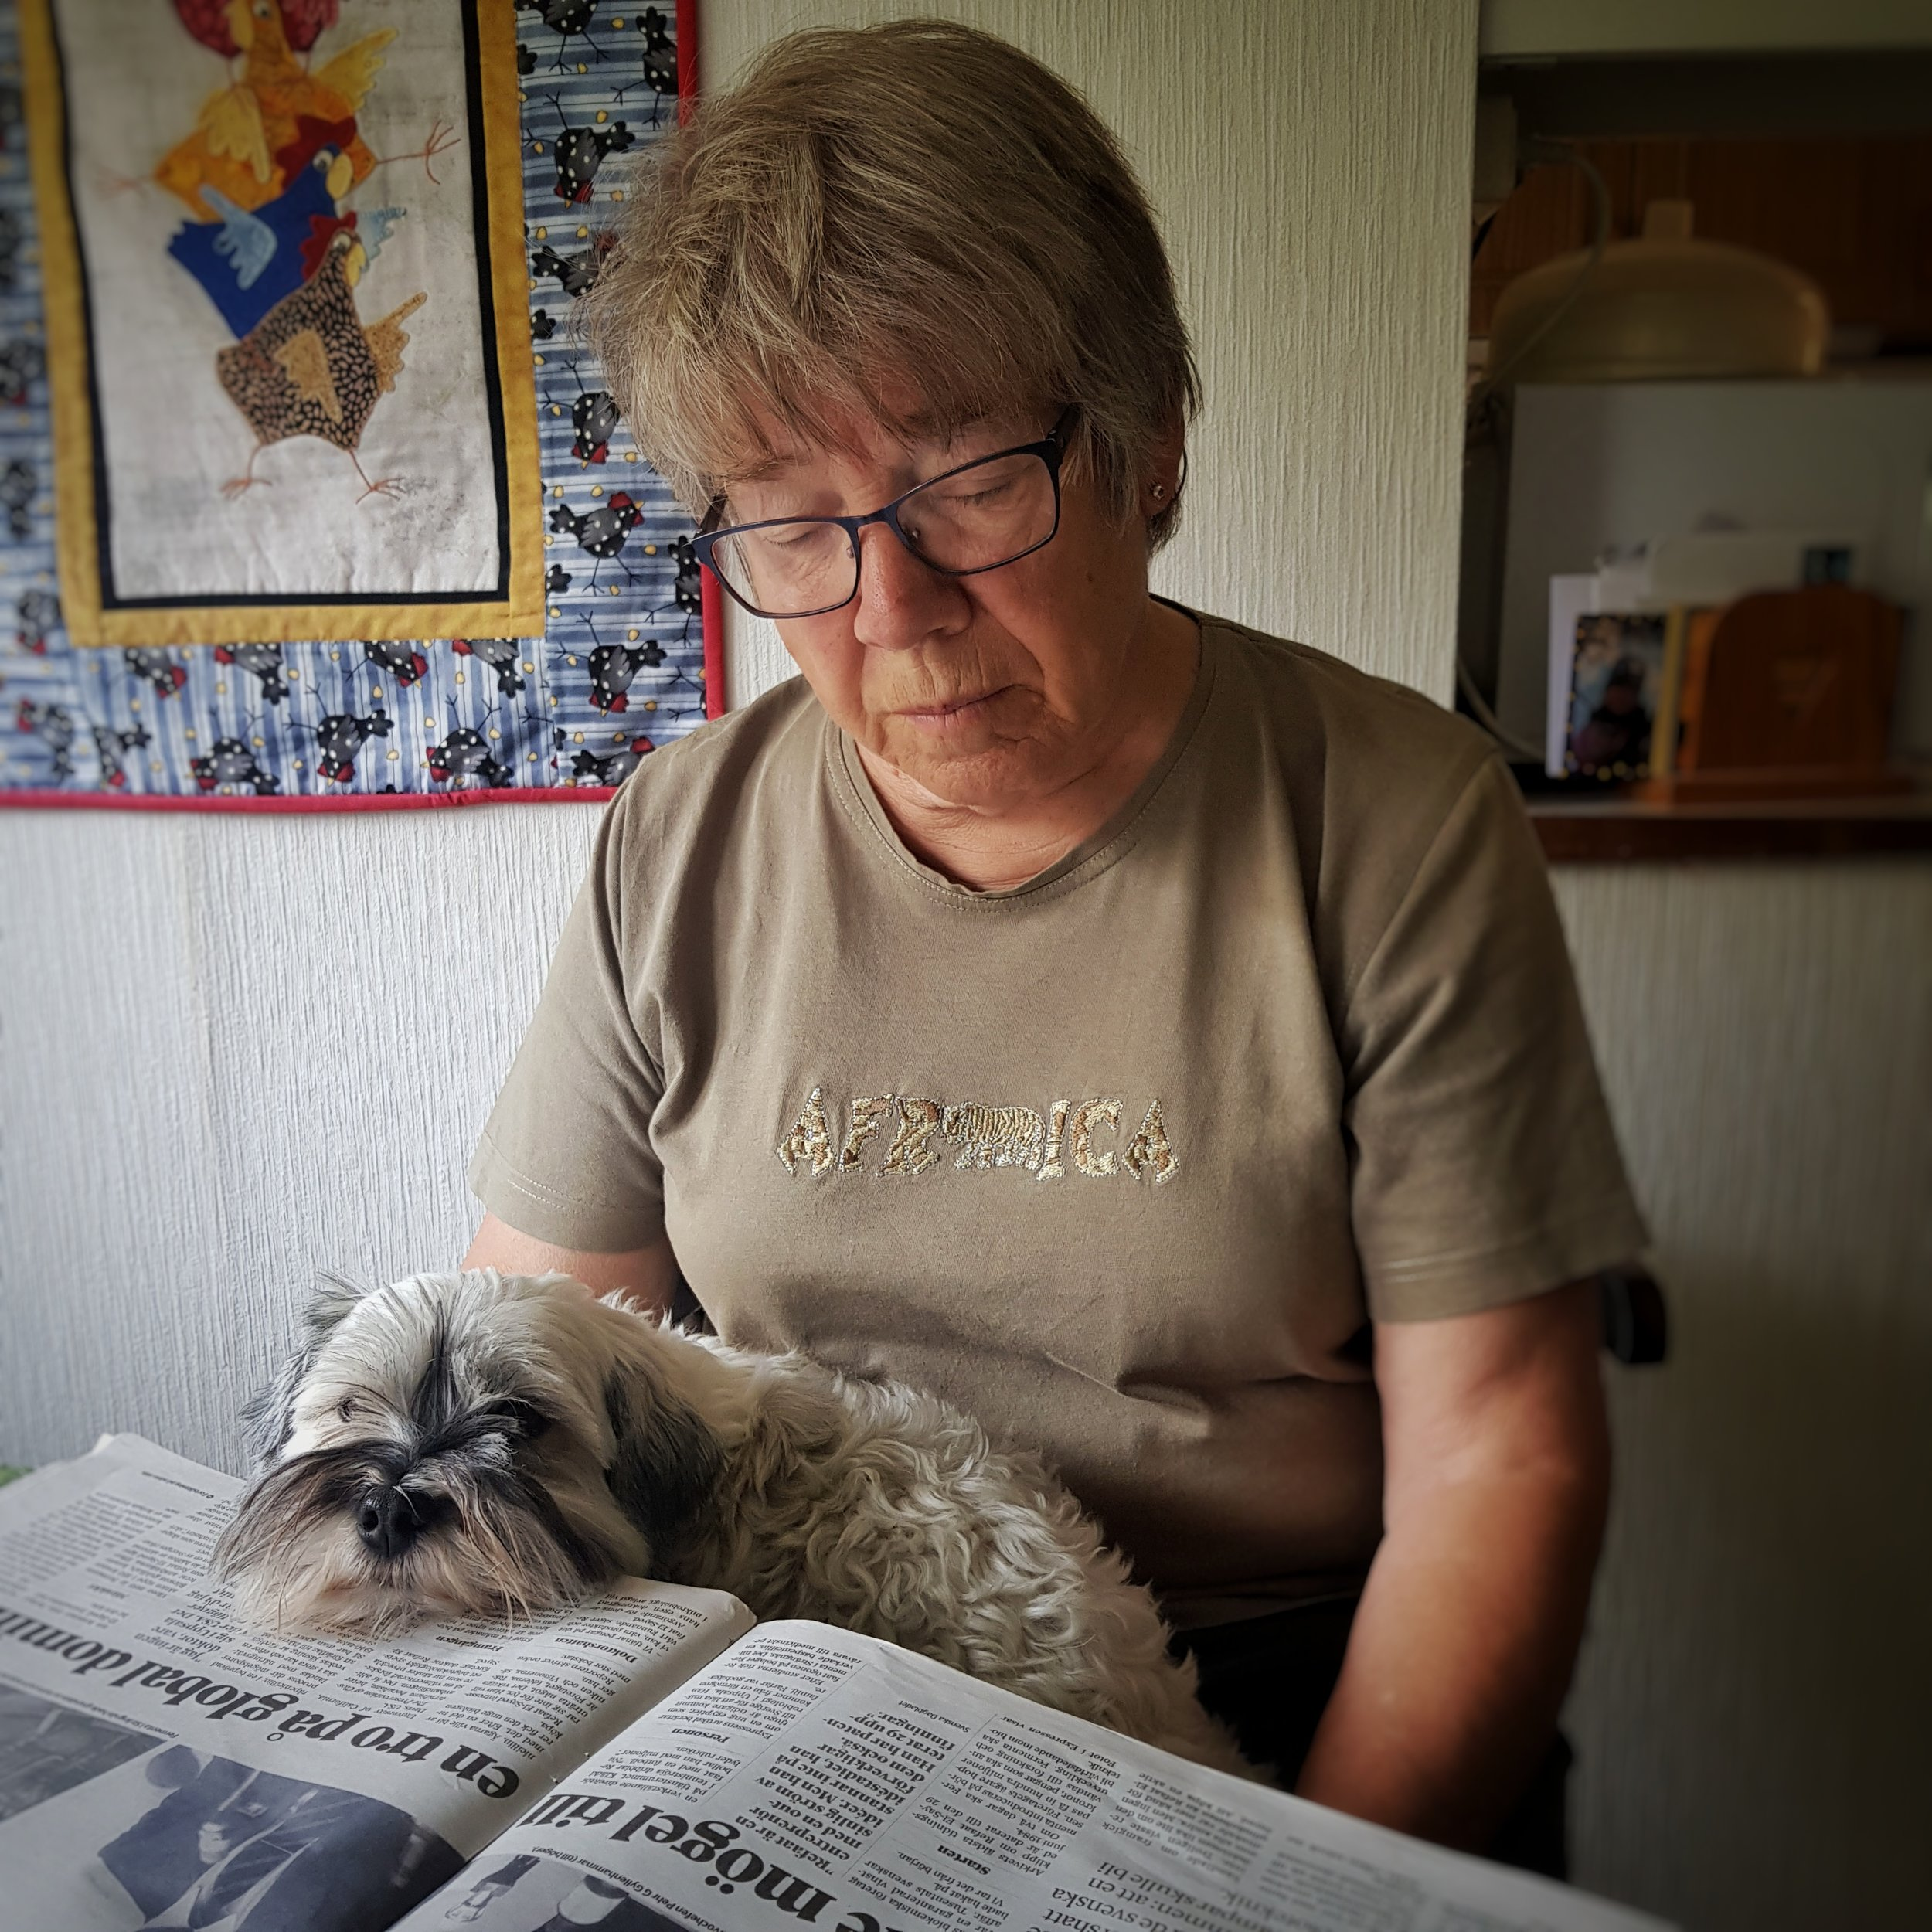 Day 200 - July 19: Gramma, please read me the news!